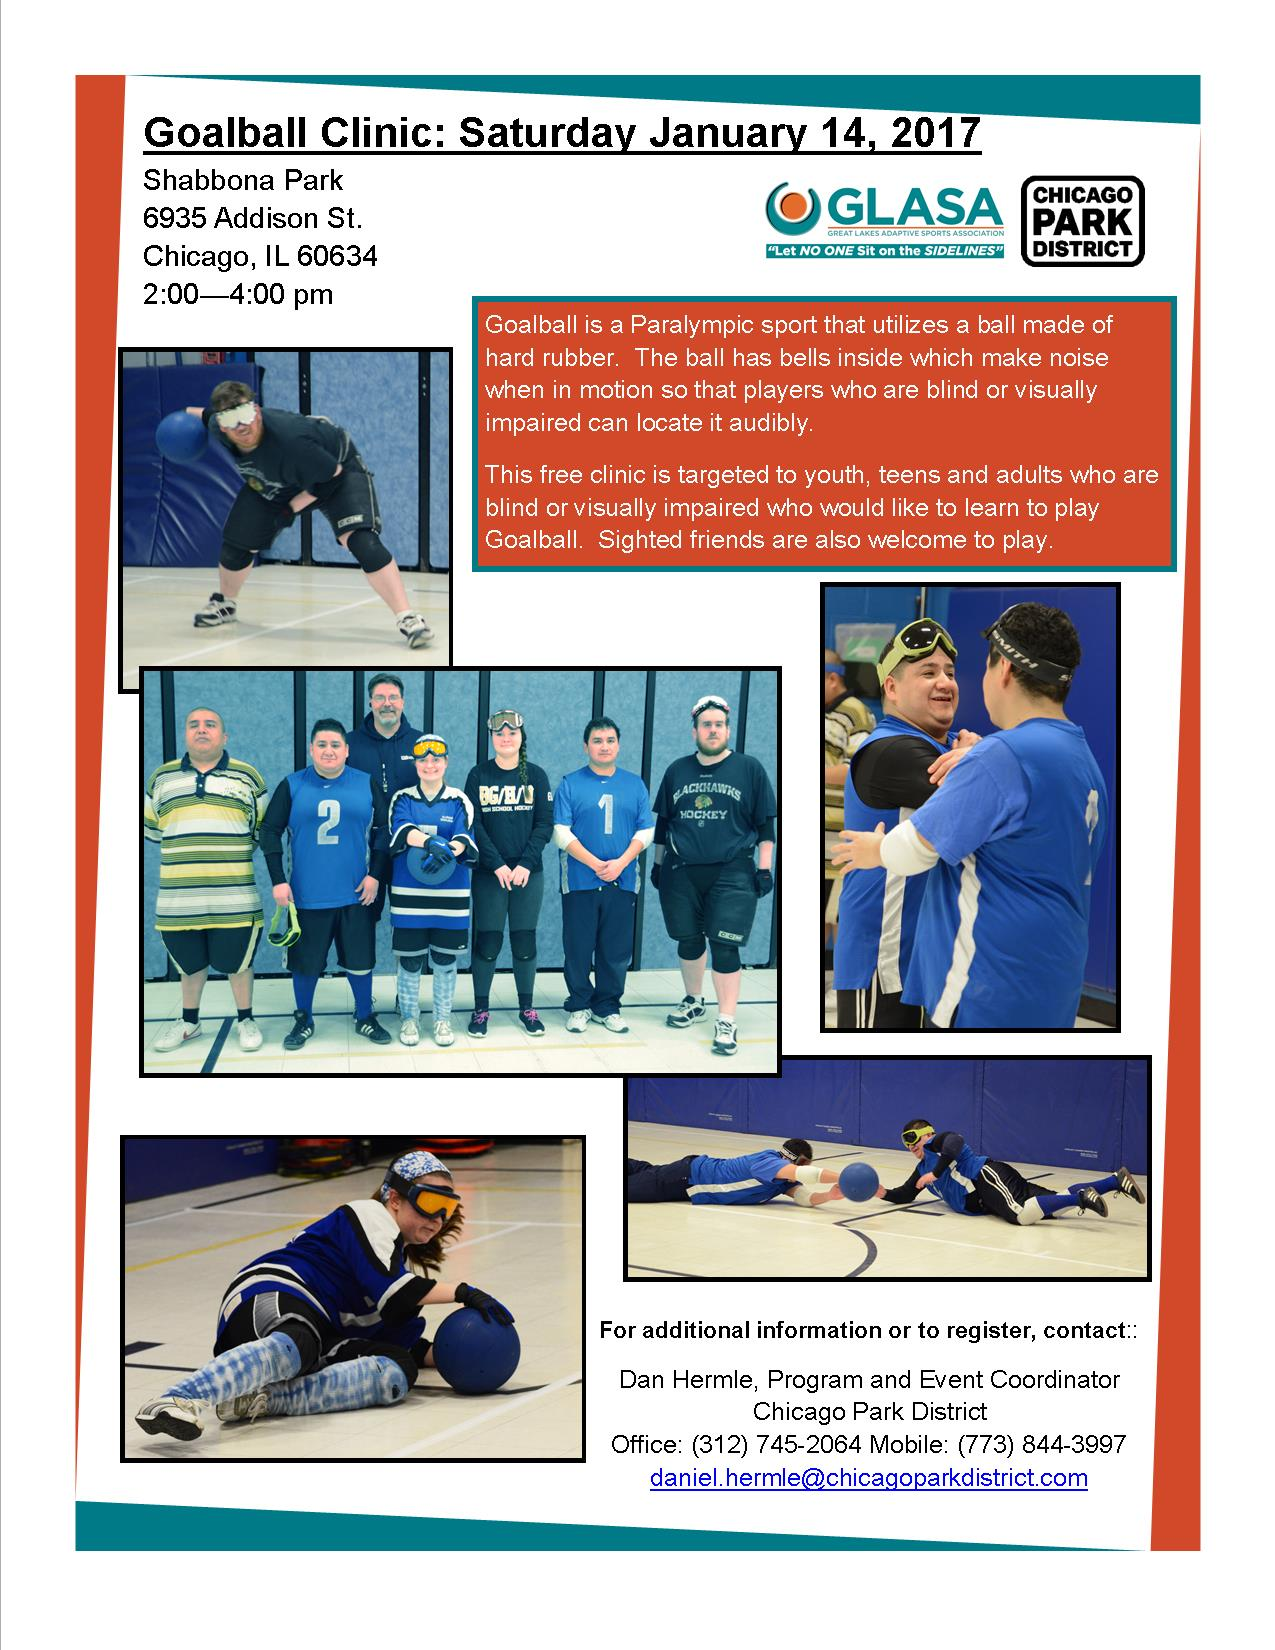 chicago-park-district-goalball-clinic-flyer